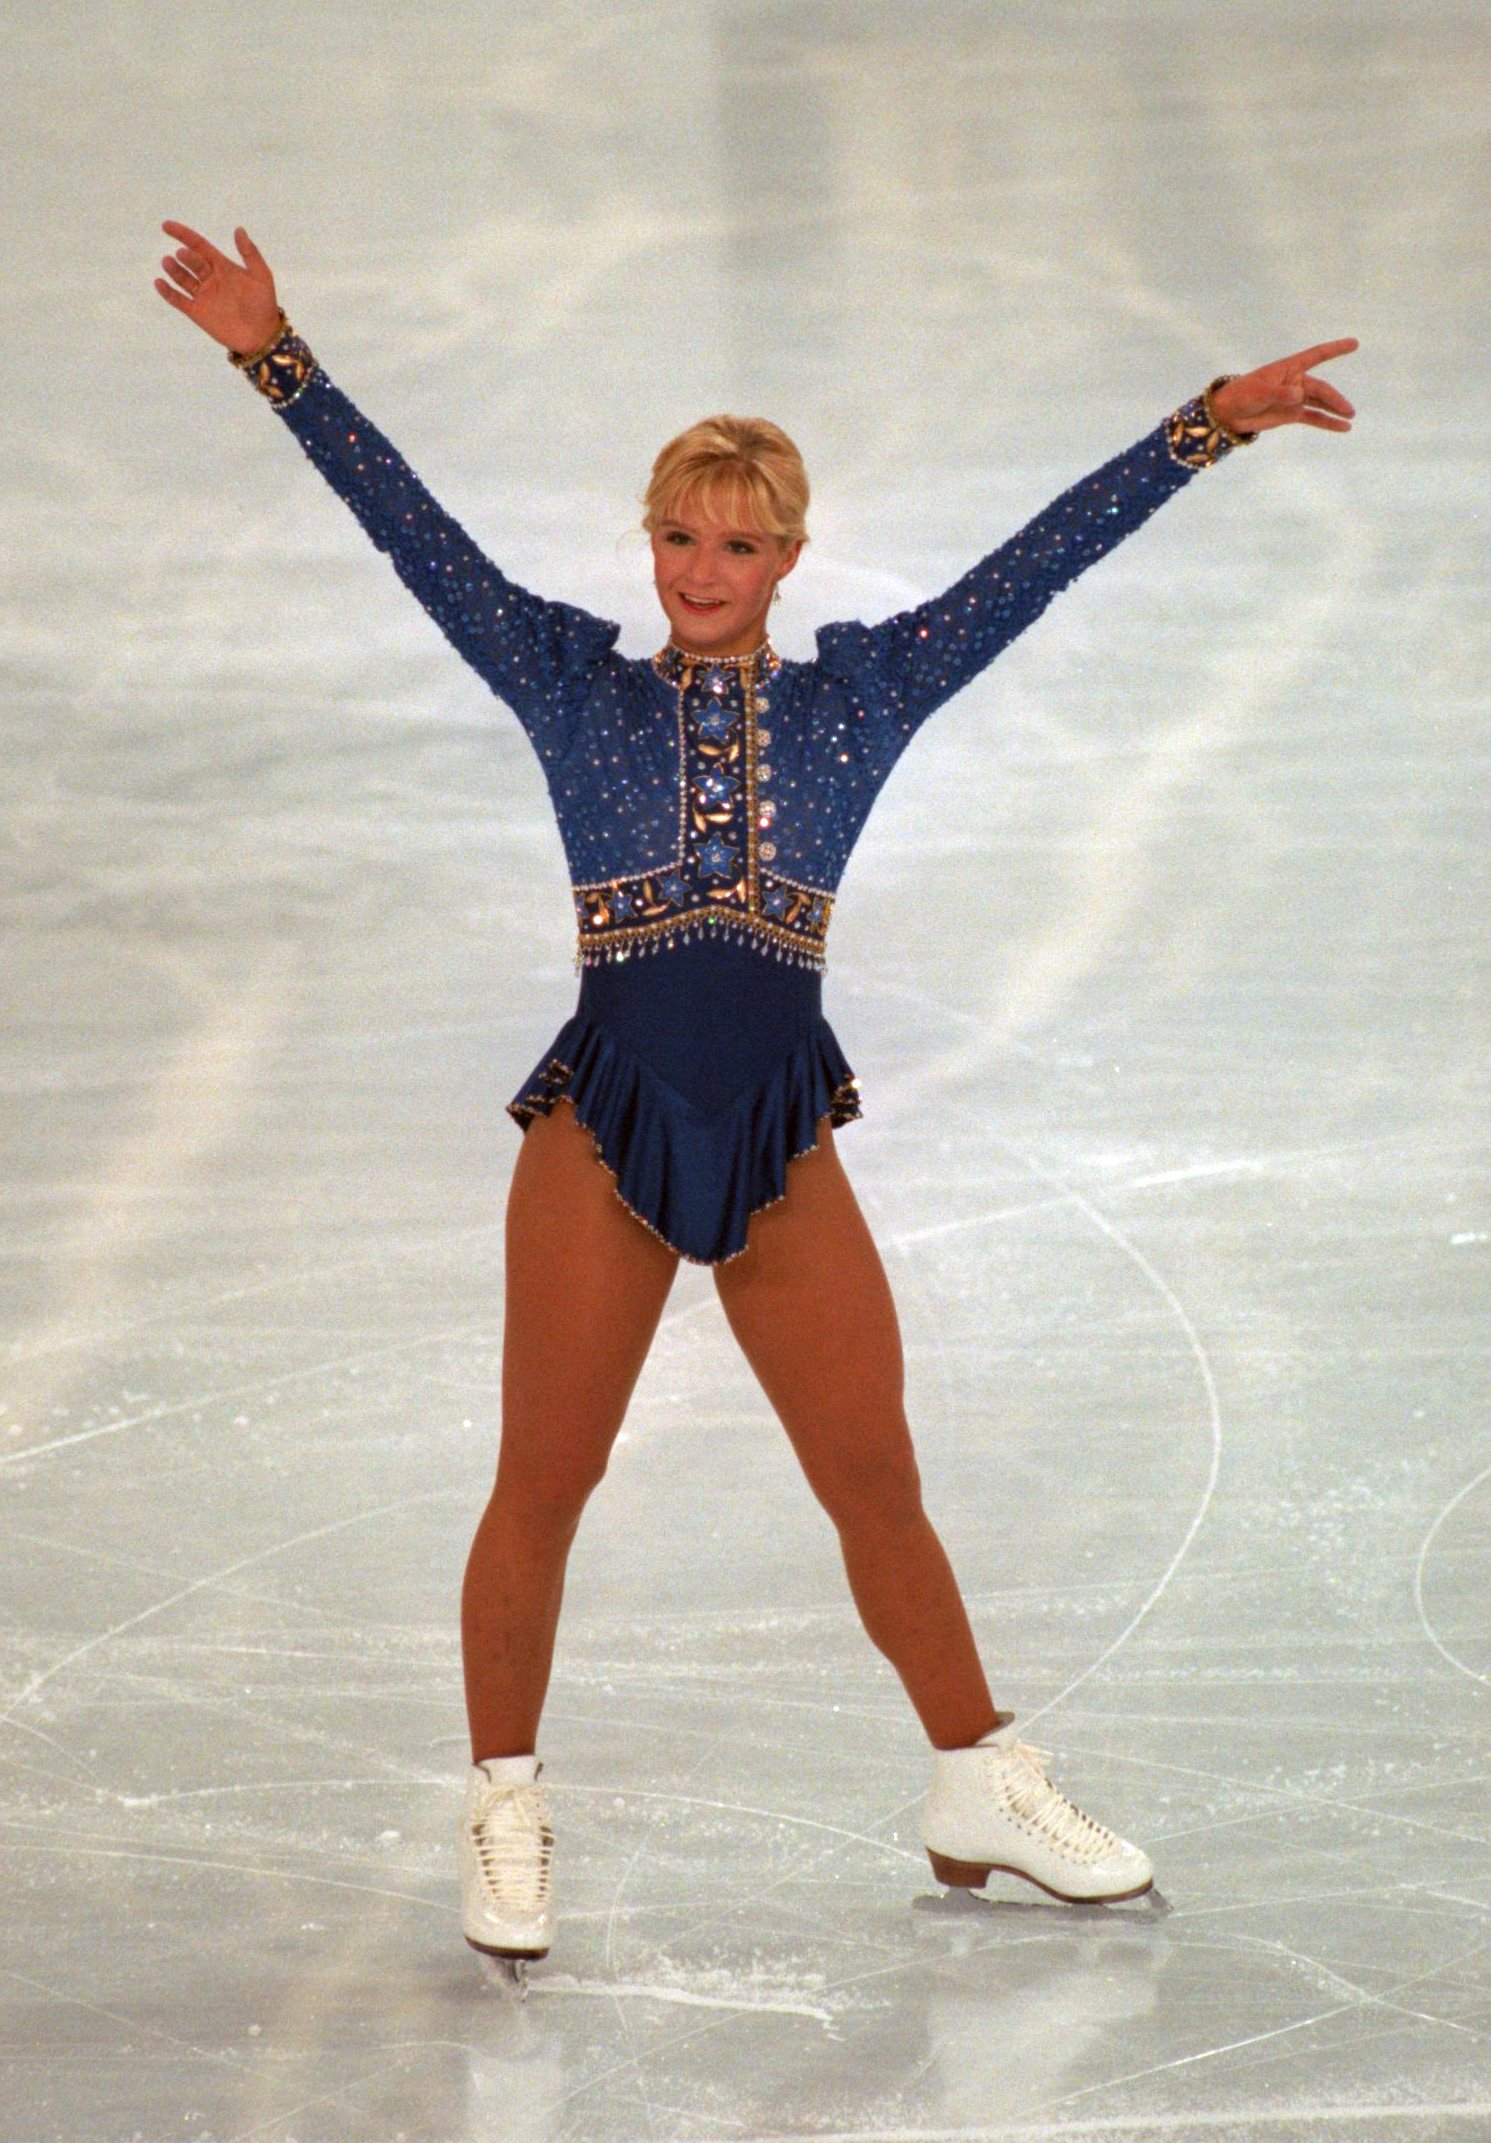 famous figure skaters of the 90s